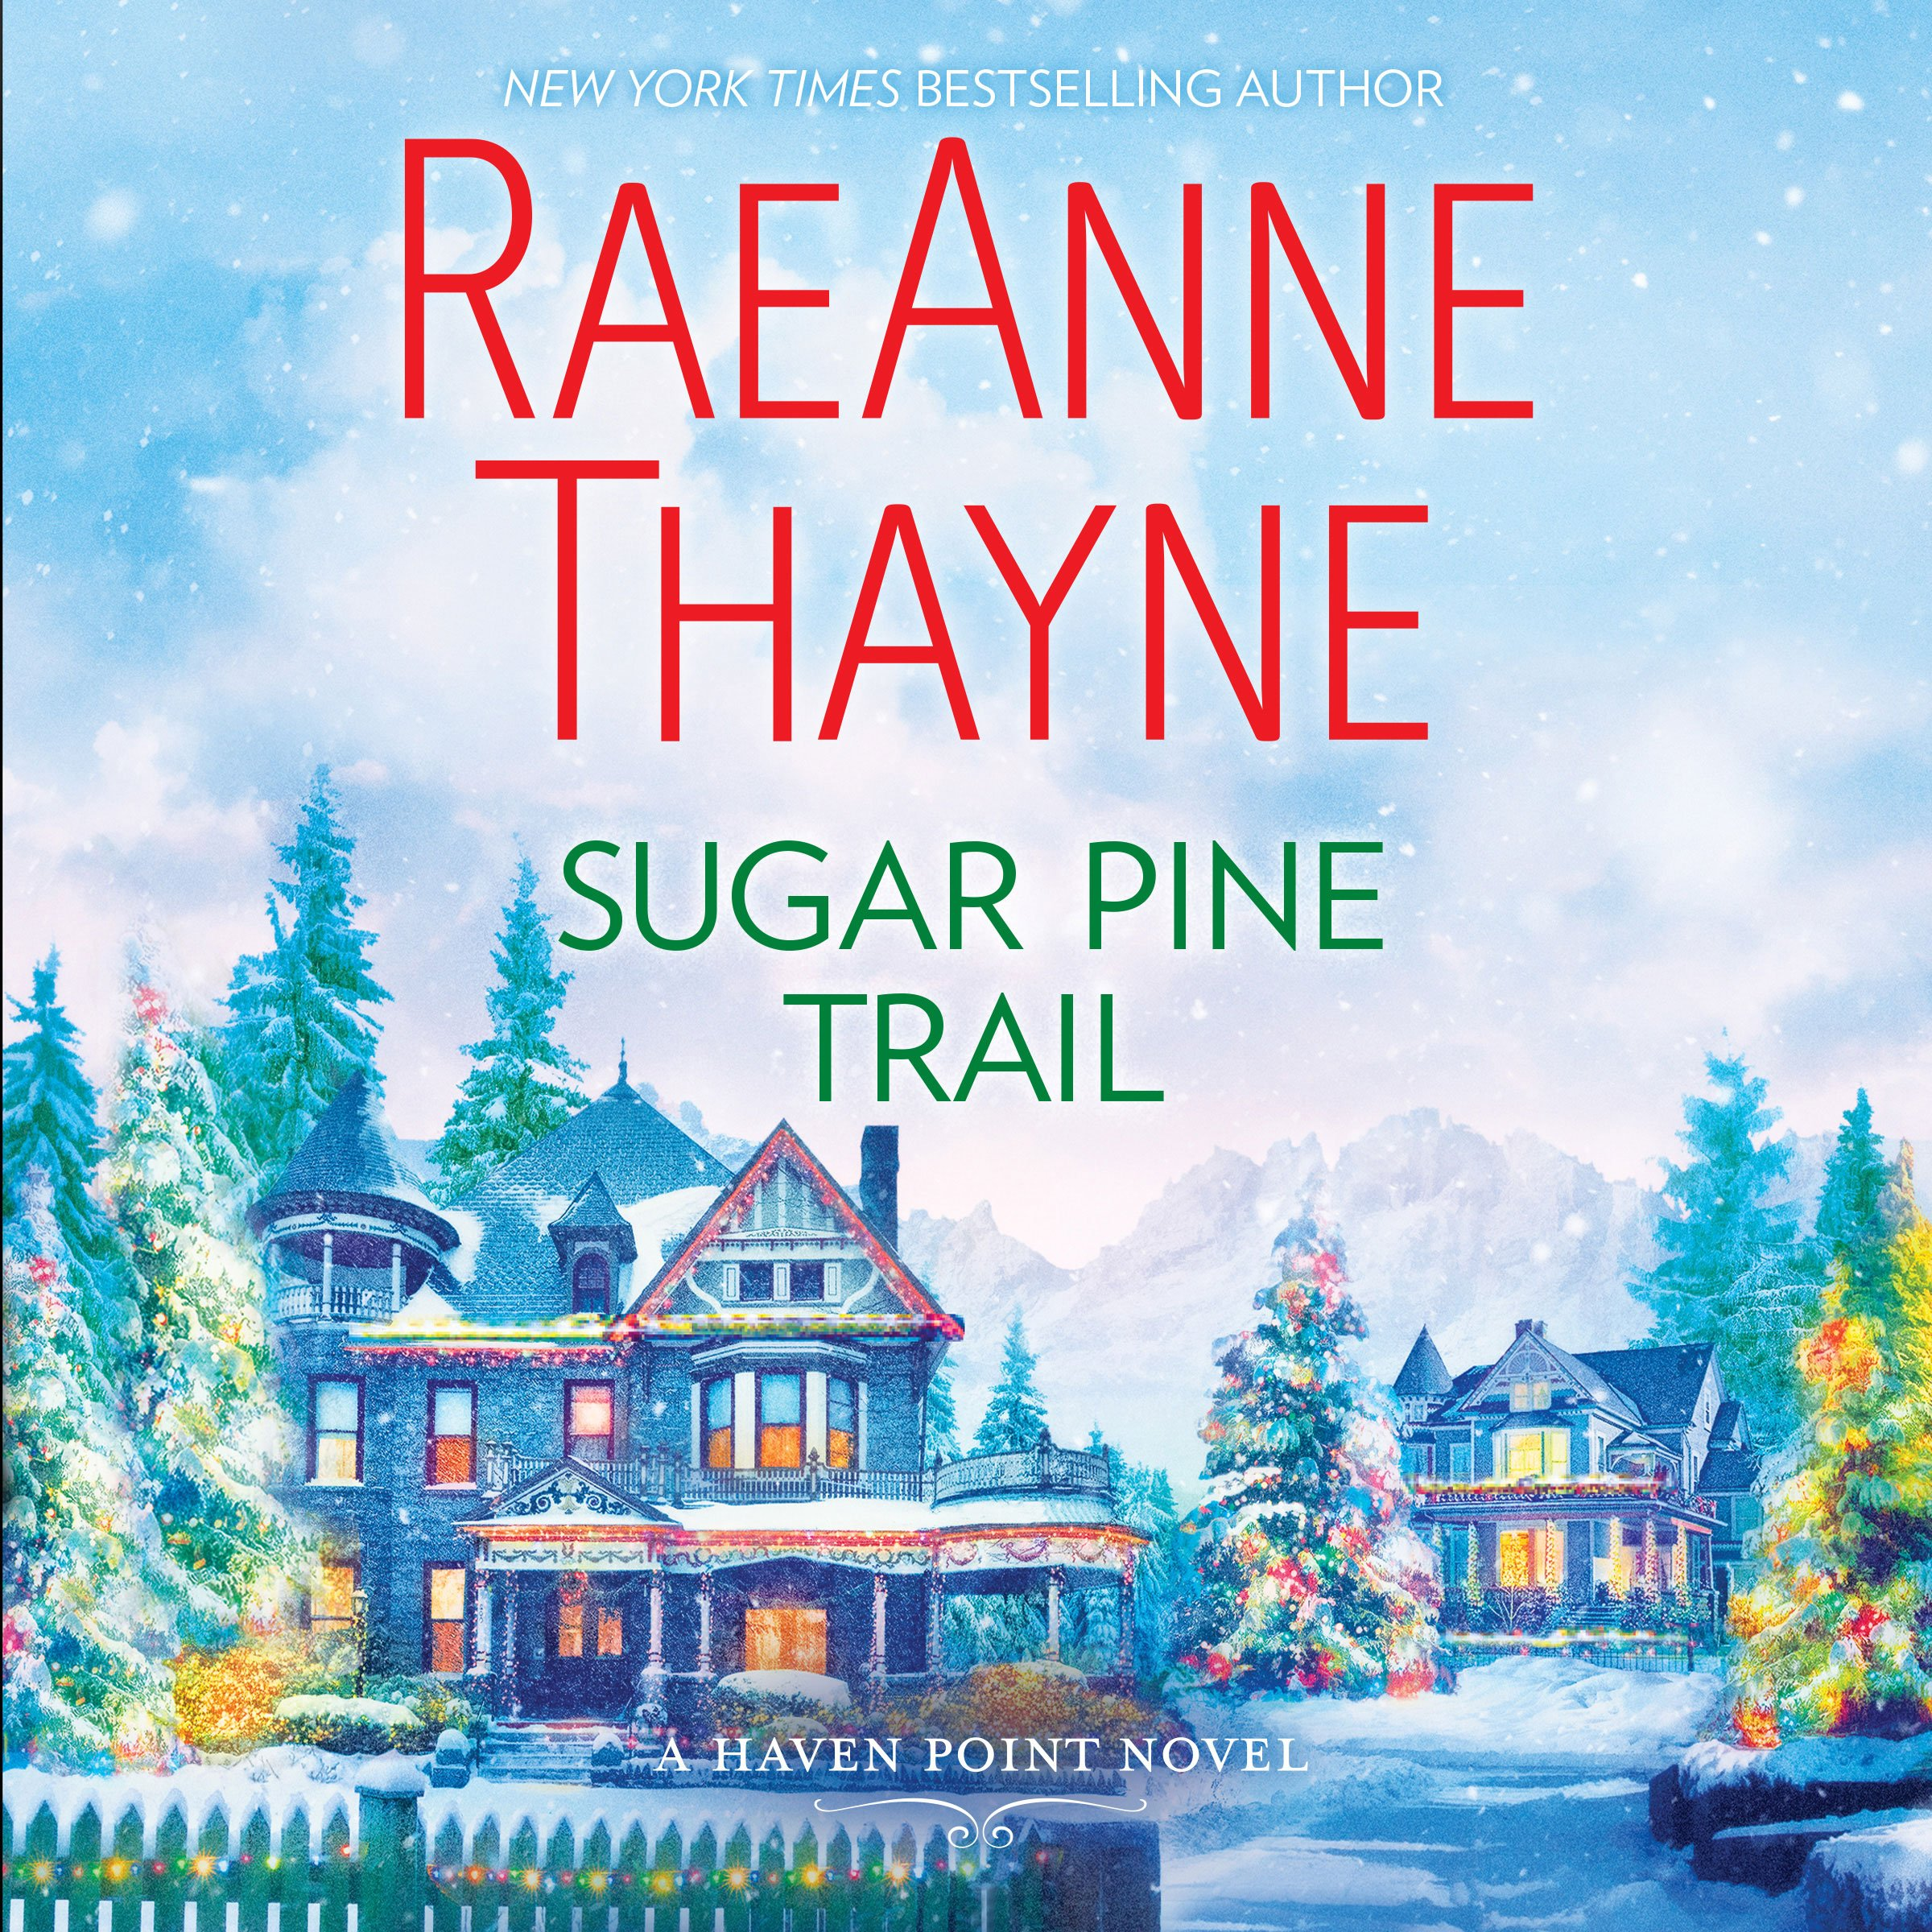 Sugar Pine Trail: A Haven Point Novel